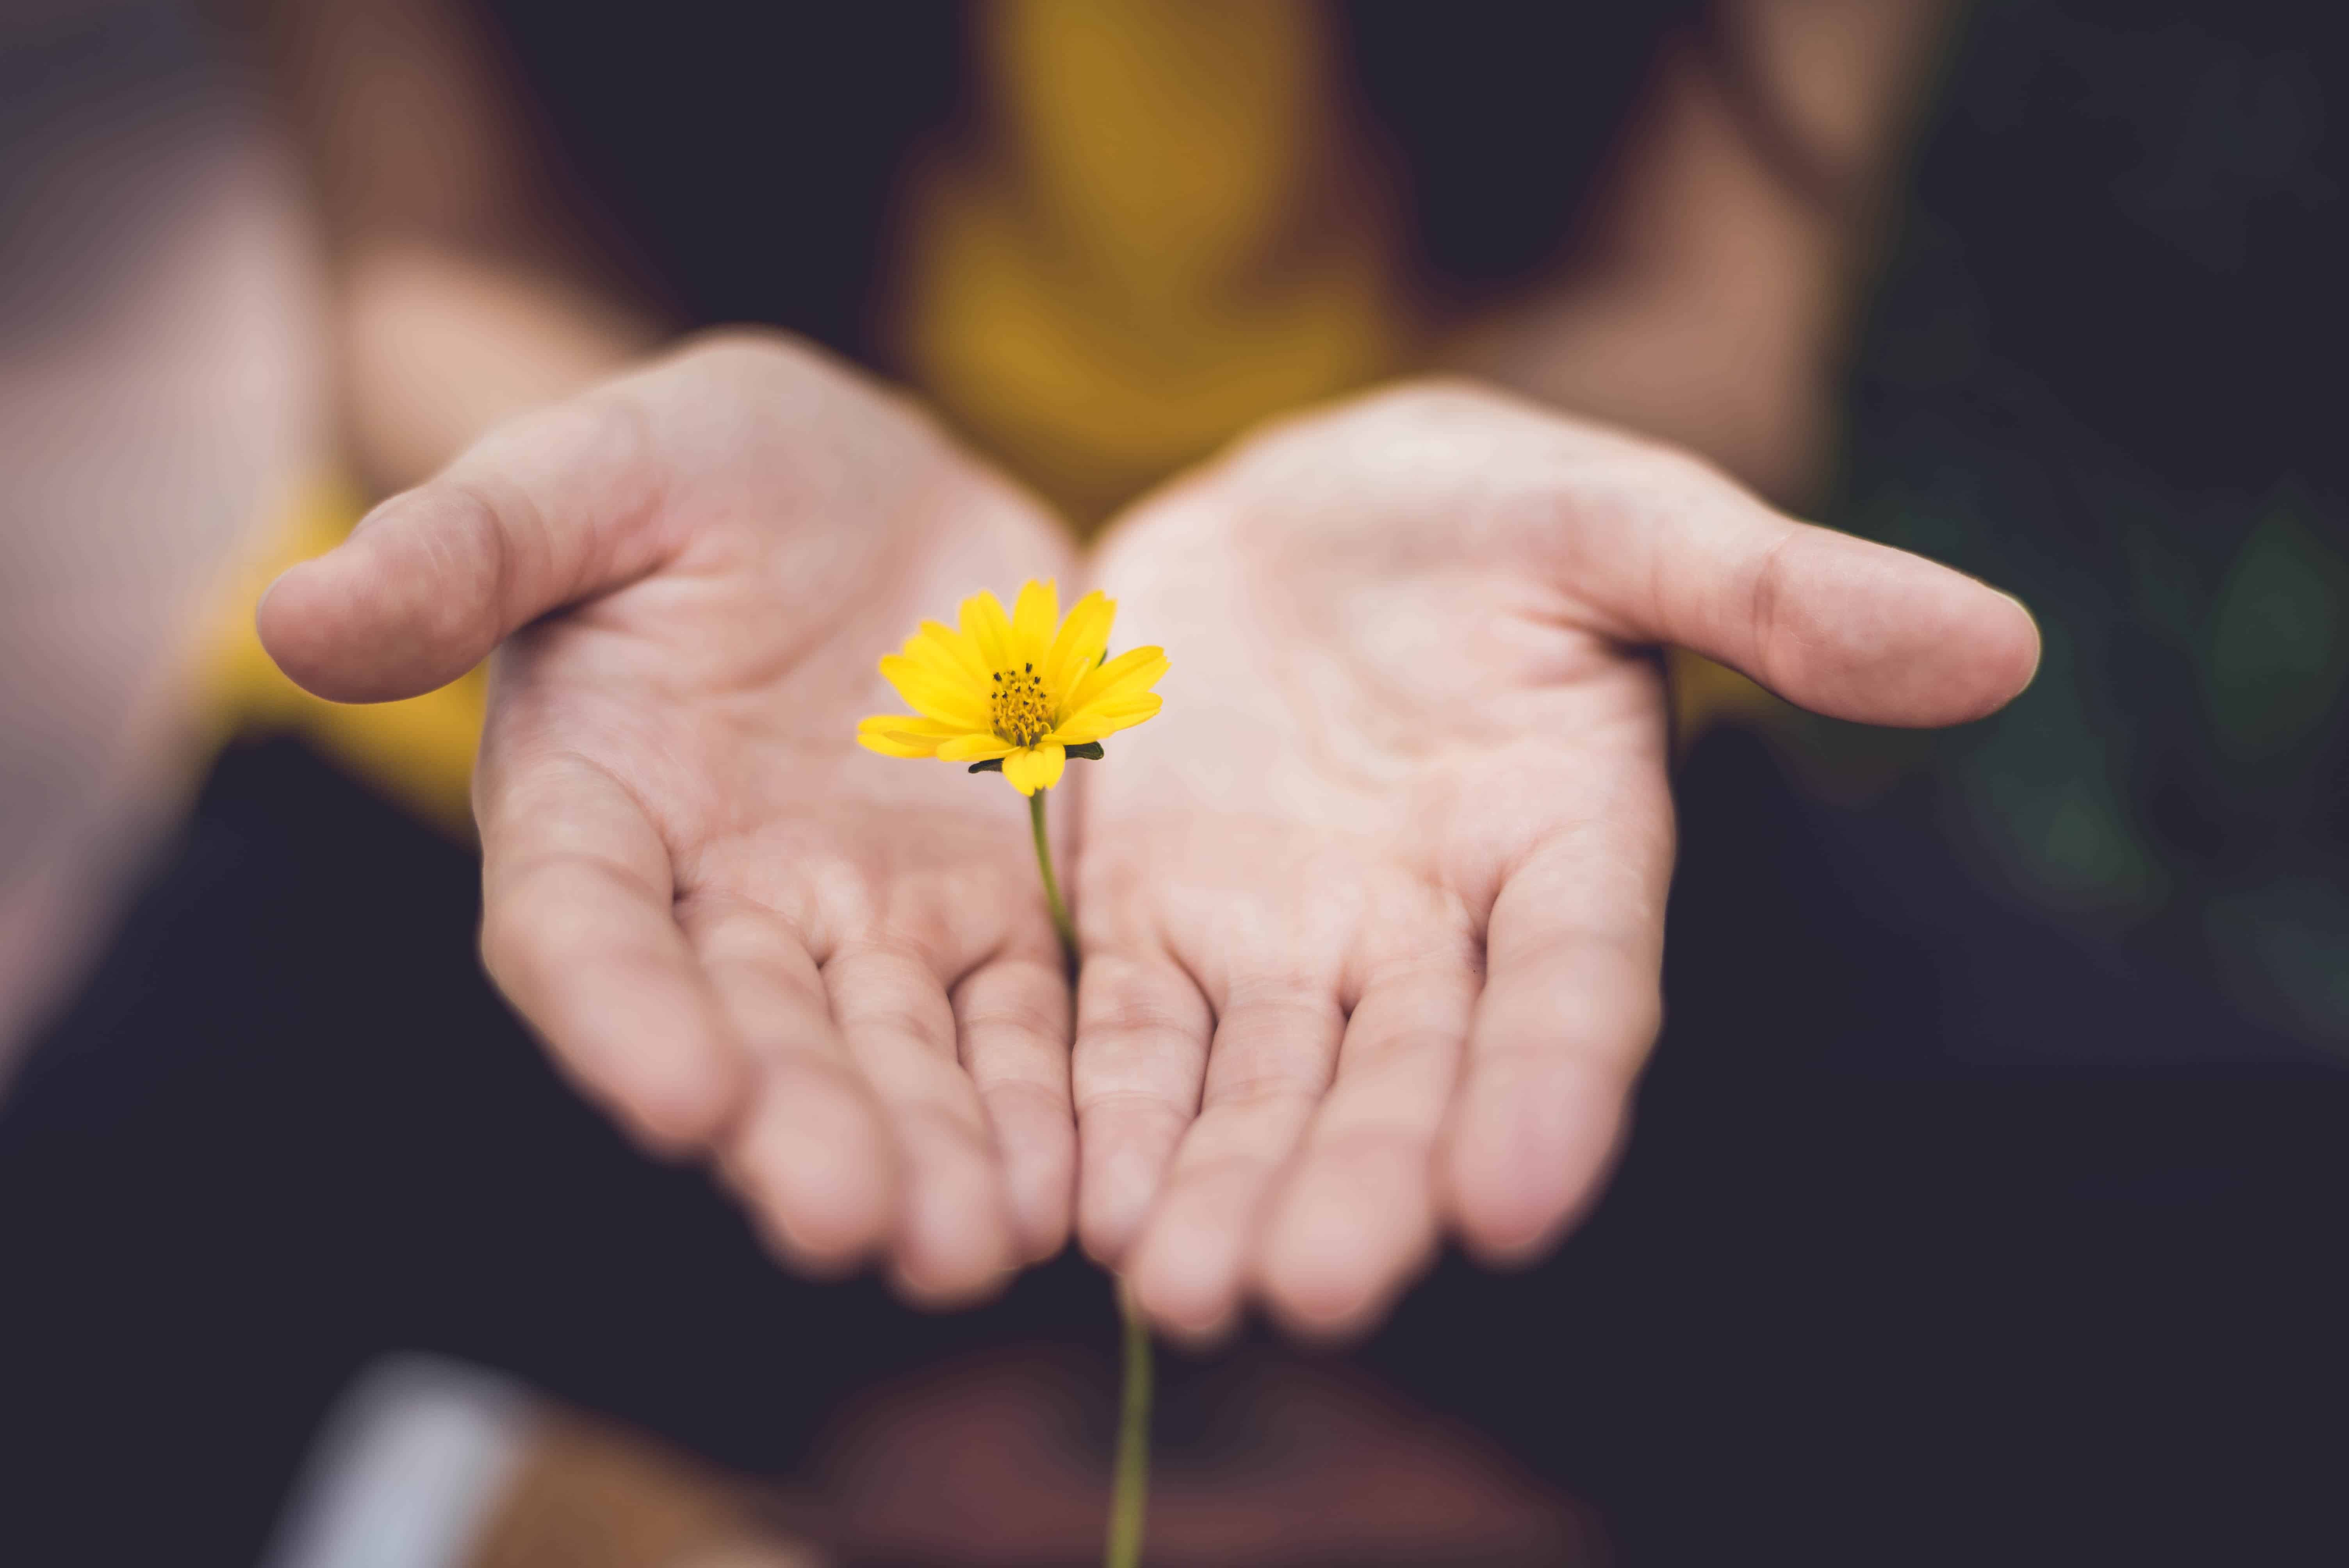 meditative hands and flower